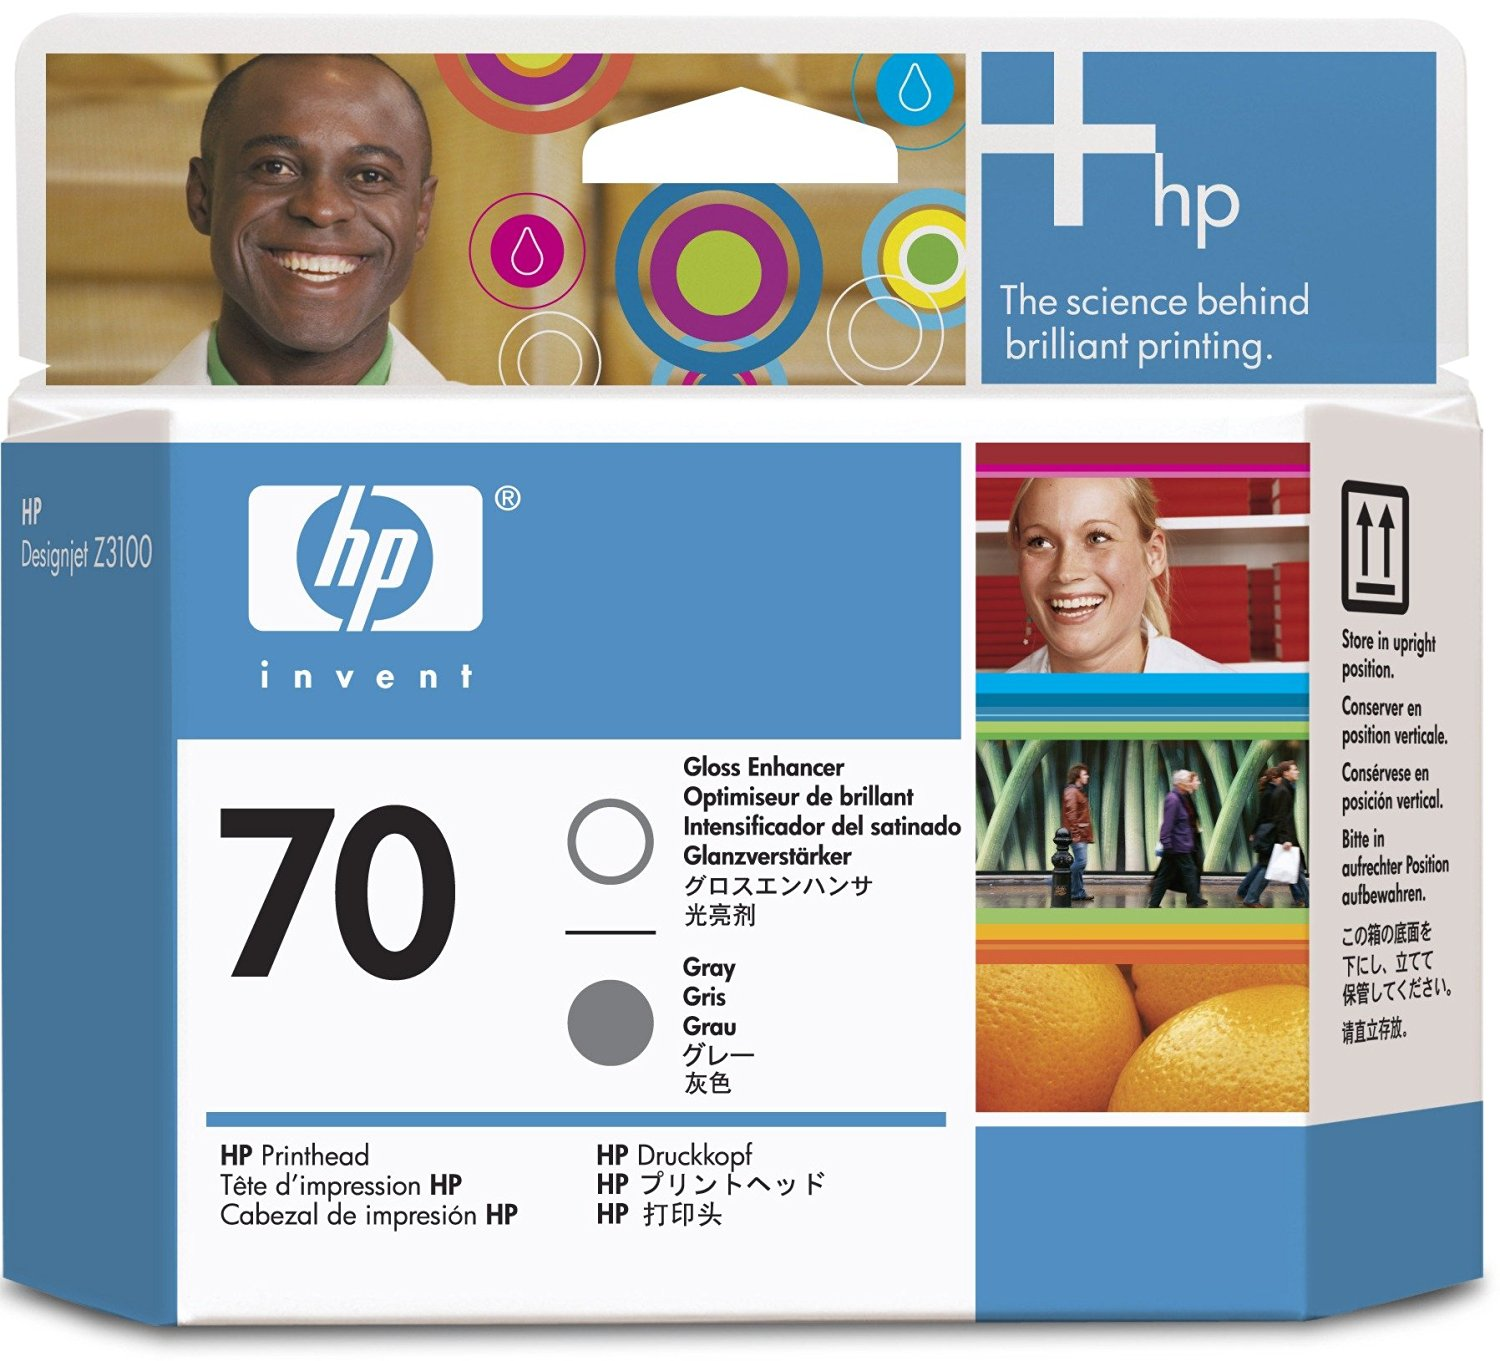 Cheap Hp Printhead Reset Find Deals On Line At 81 Yellow Designjet Dye And Cleaner Original Get Quotations 70 C9410a Gloss Enhancer Gray